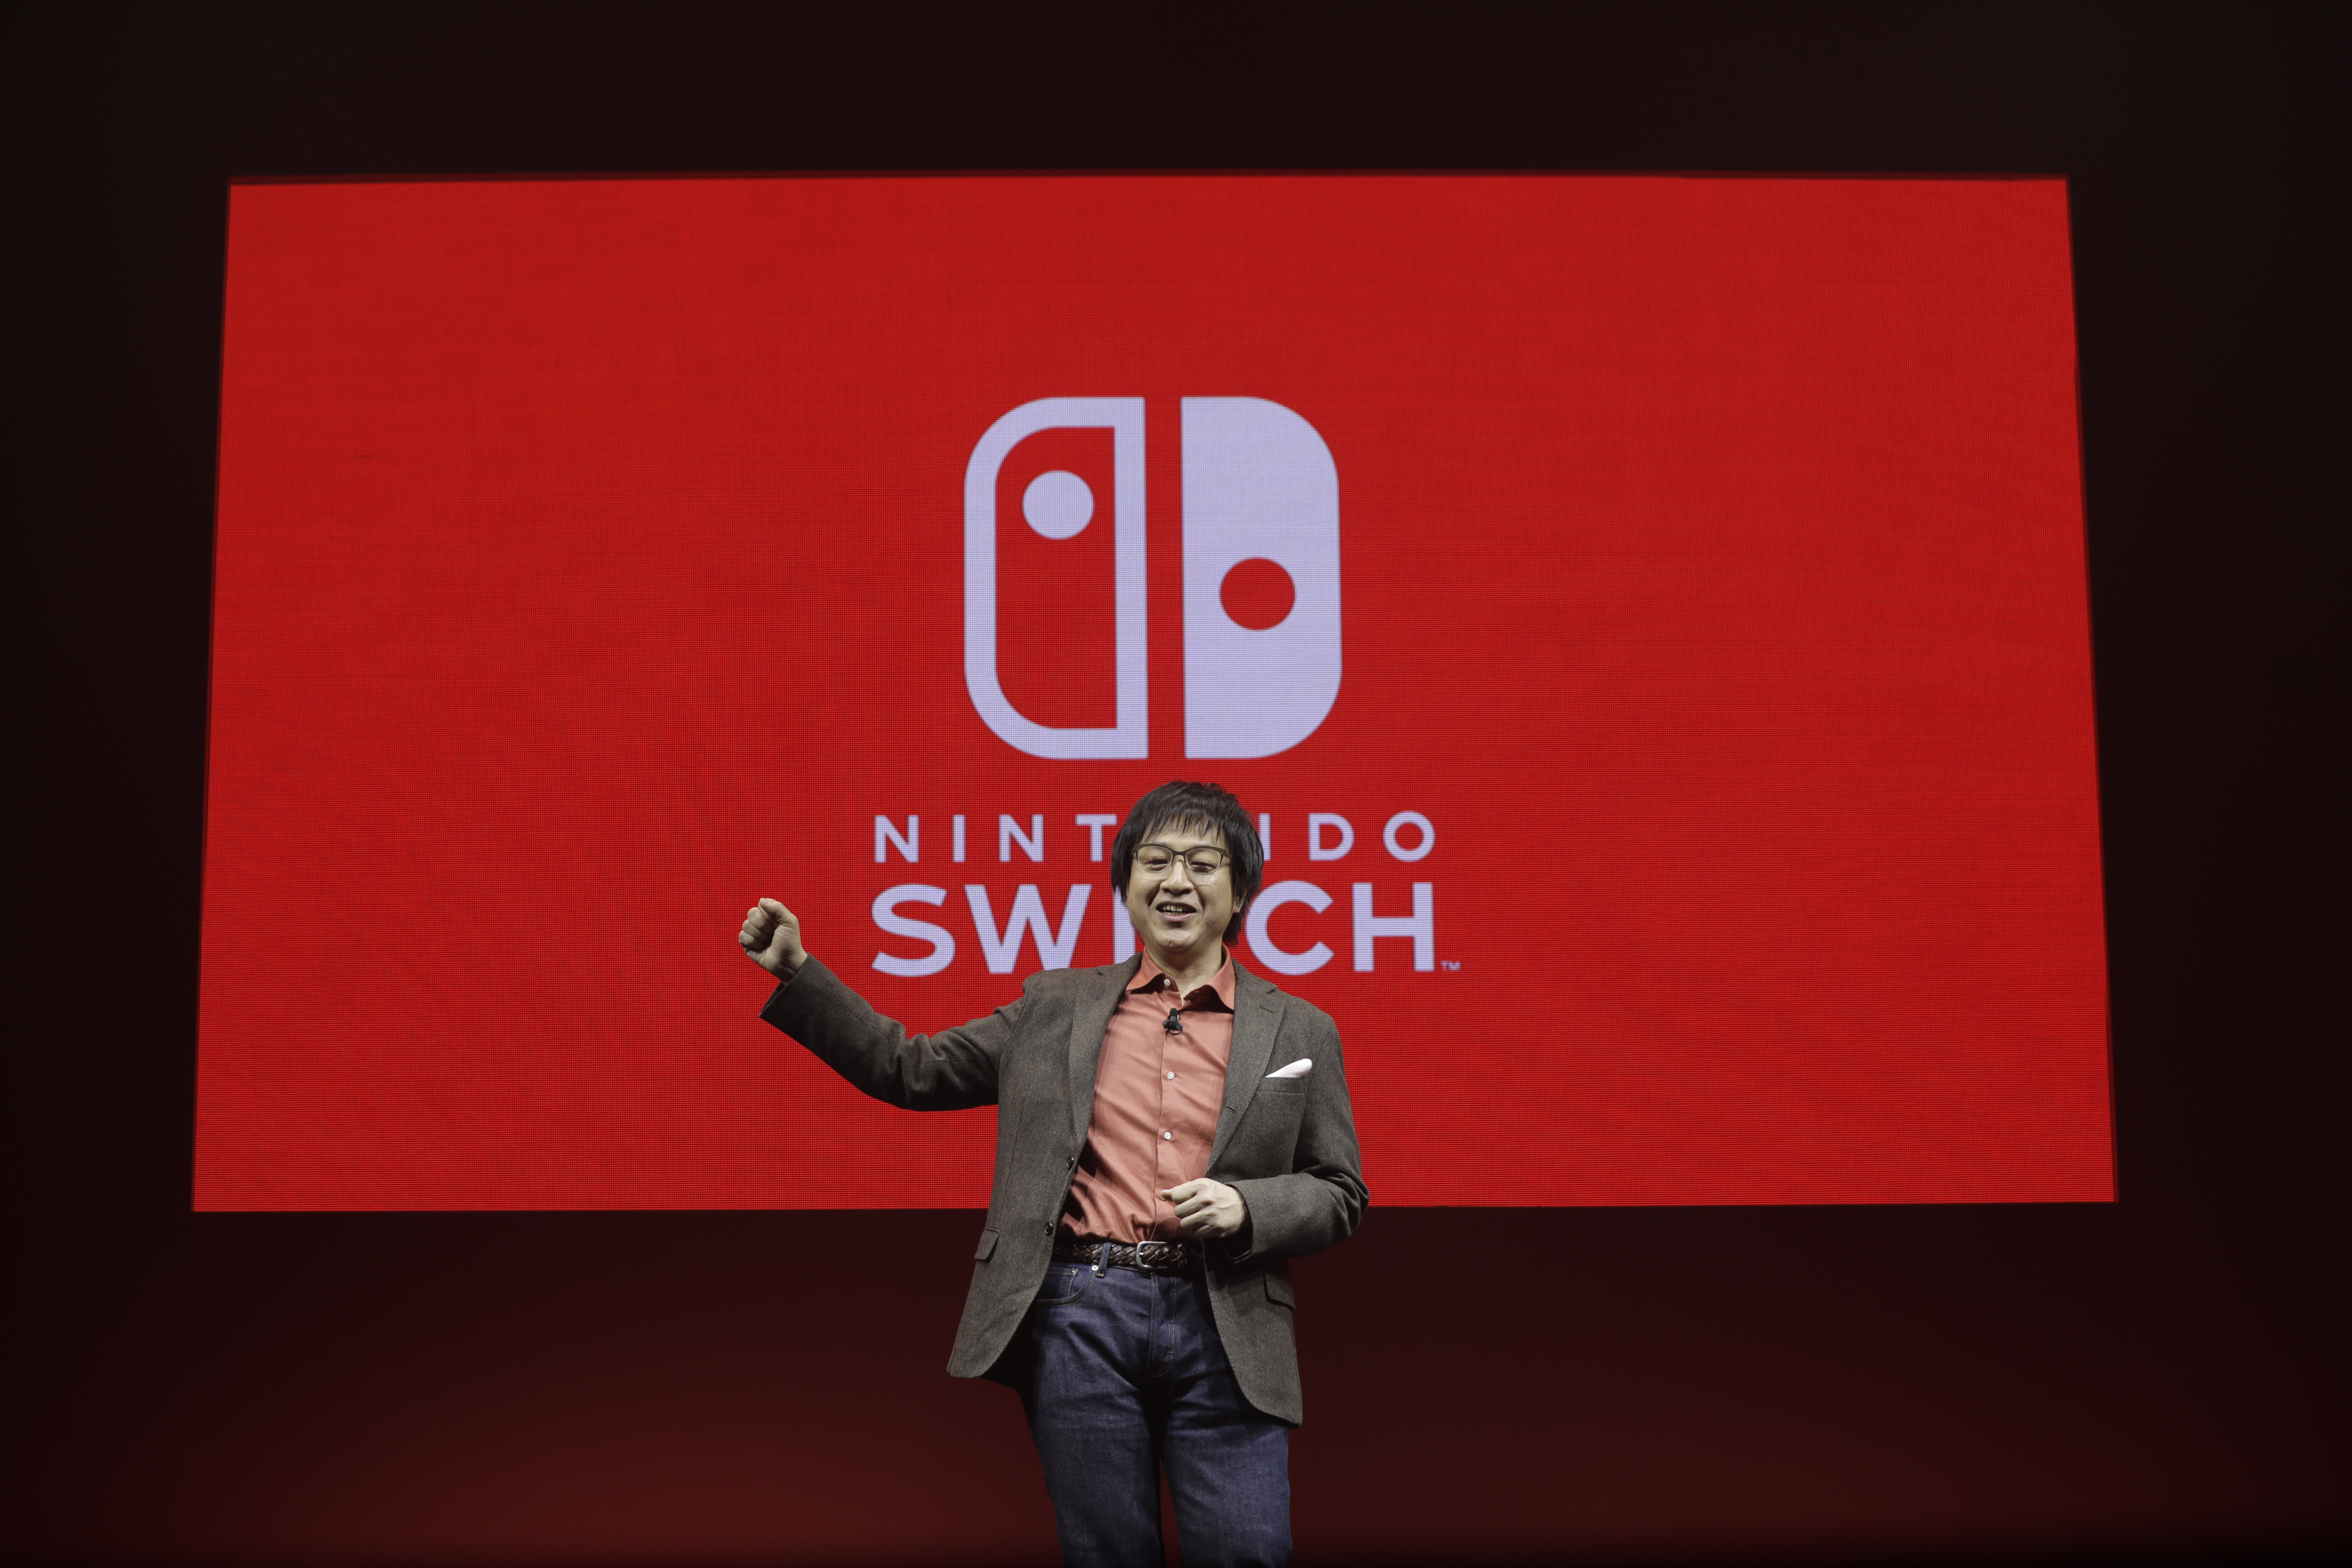 Shinya Takahashi, managing executive officer with Nintendo Co., speaks during an unveiling event for Nintendo Co.'s Switch game console in Tokyo on Friday, Jan. 13, 2017.